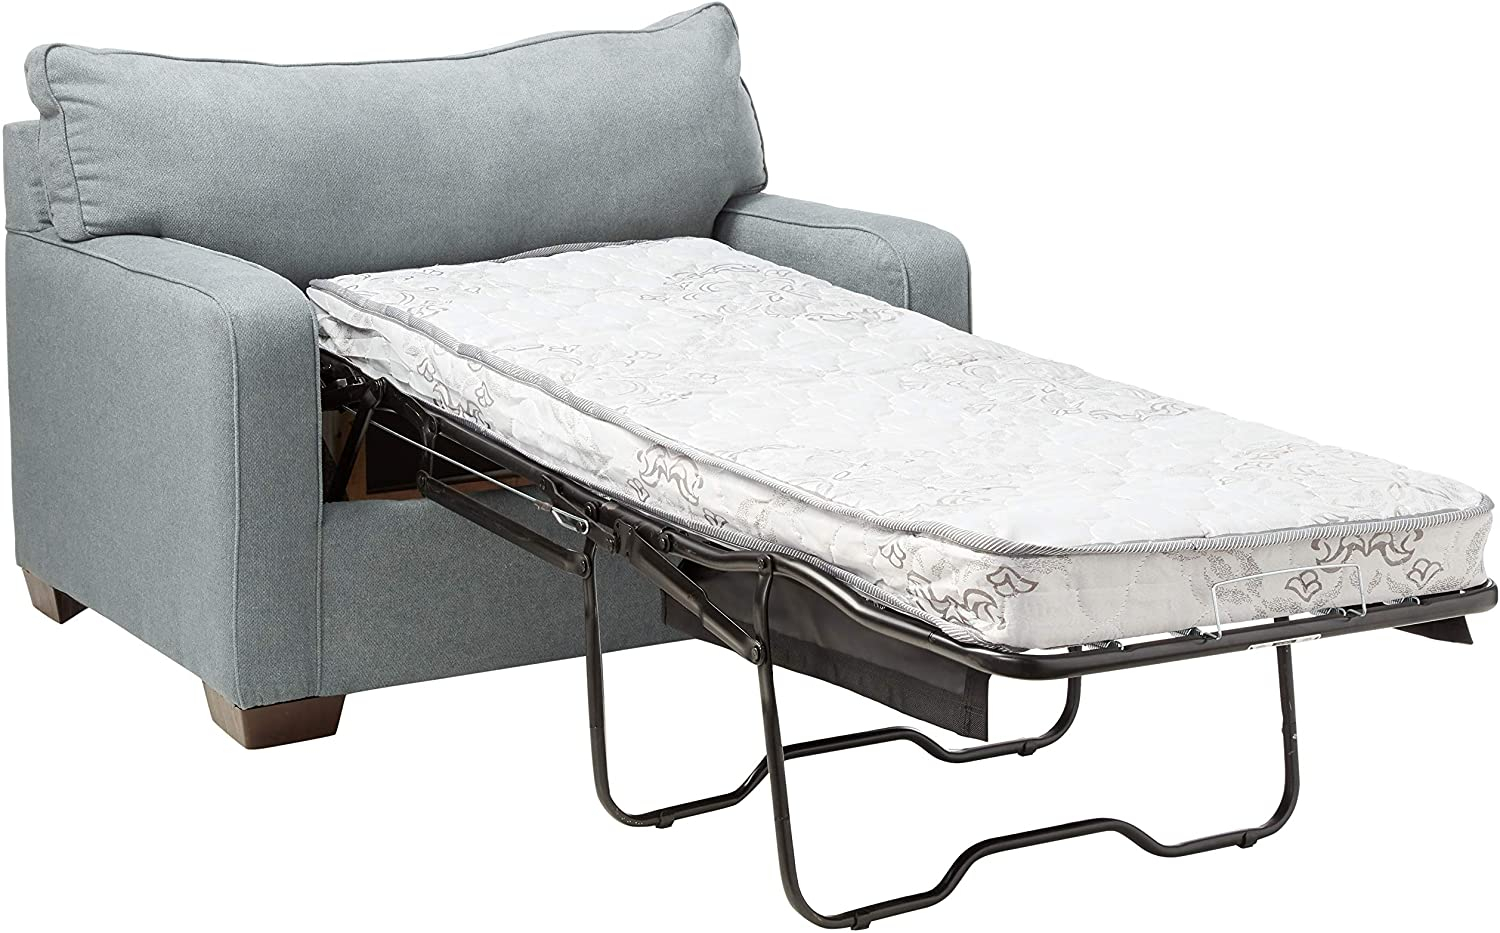 18 Best Sleeper Chairs For Adults | Sleepauthorities Intended For New London Convertible Chairs (View 6 of 15)